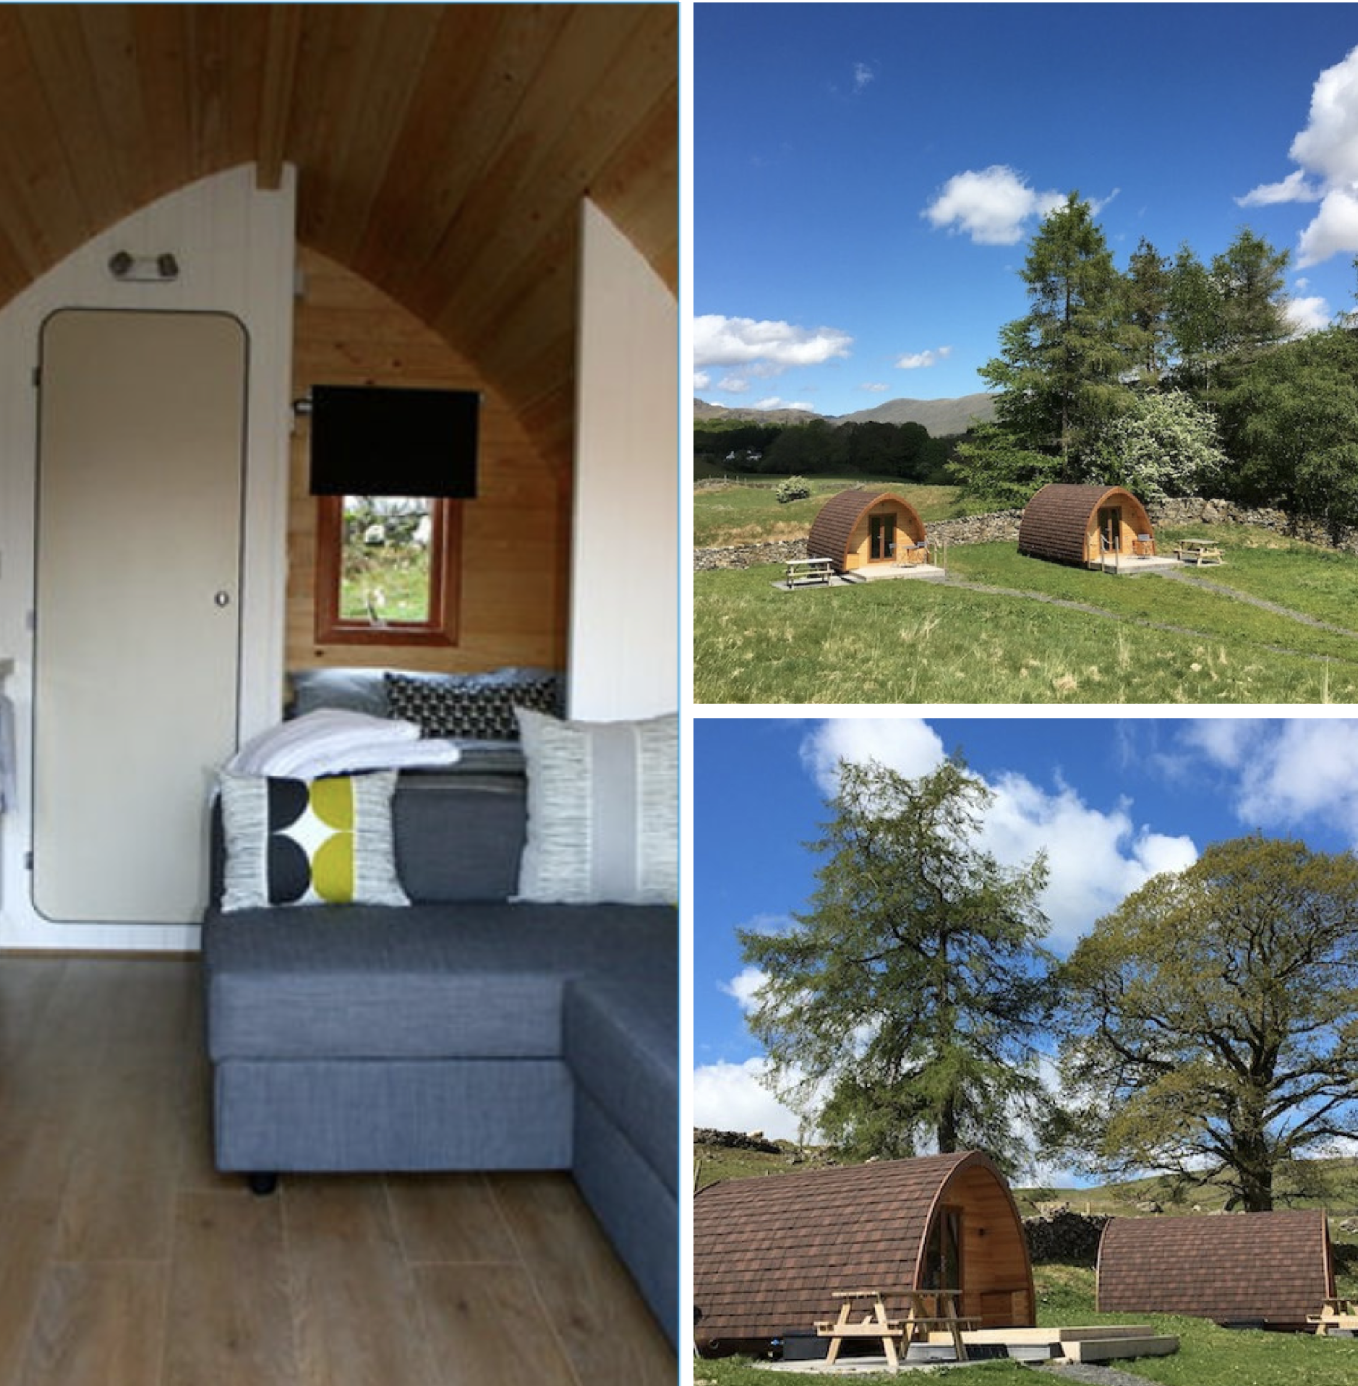 camping pods off the beaten track in beautiful rural Cumbria